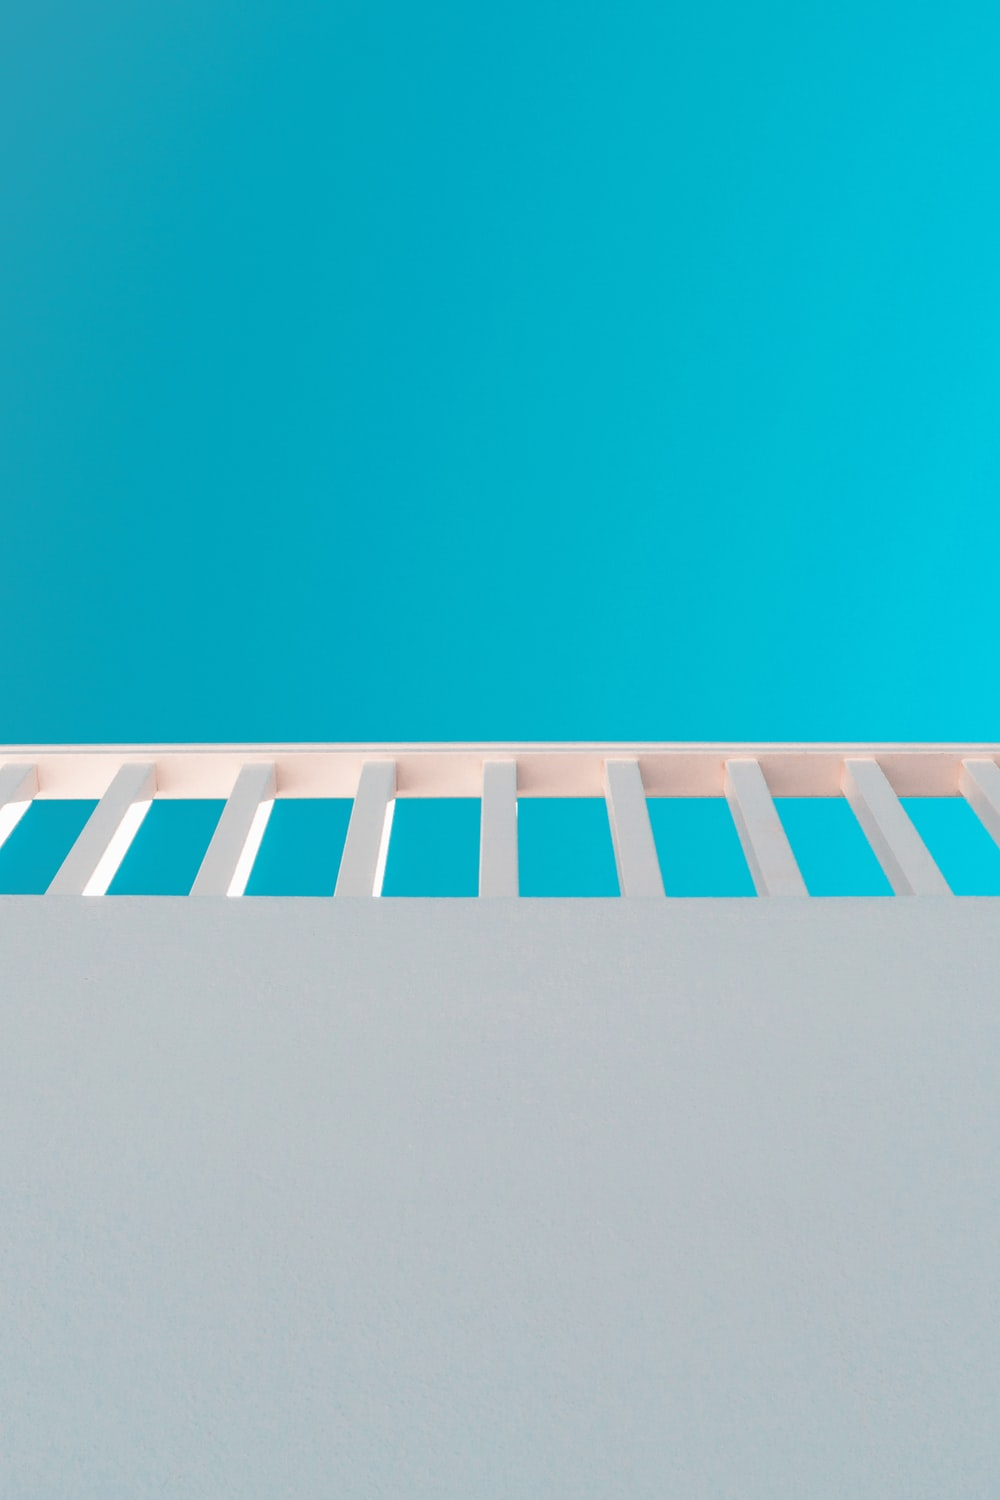 orange and blue striped wall